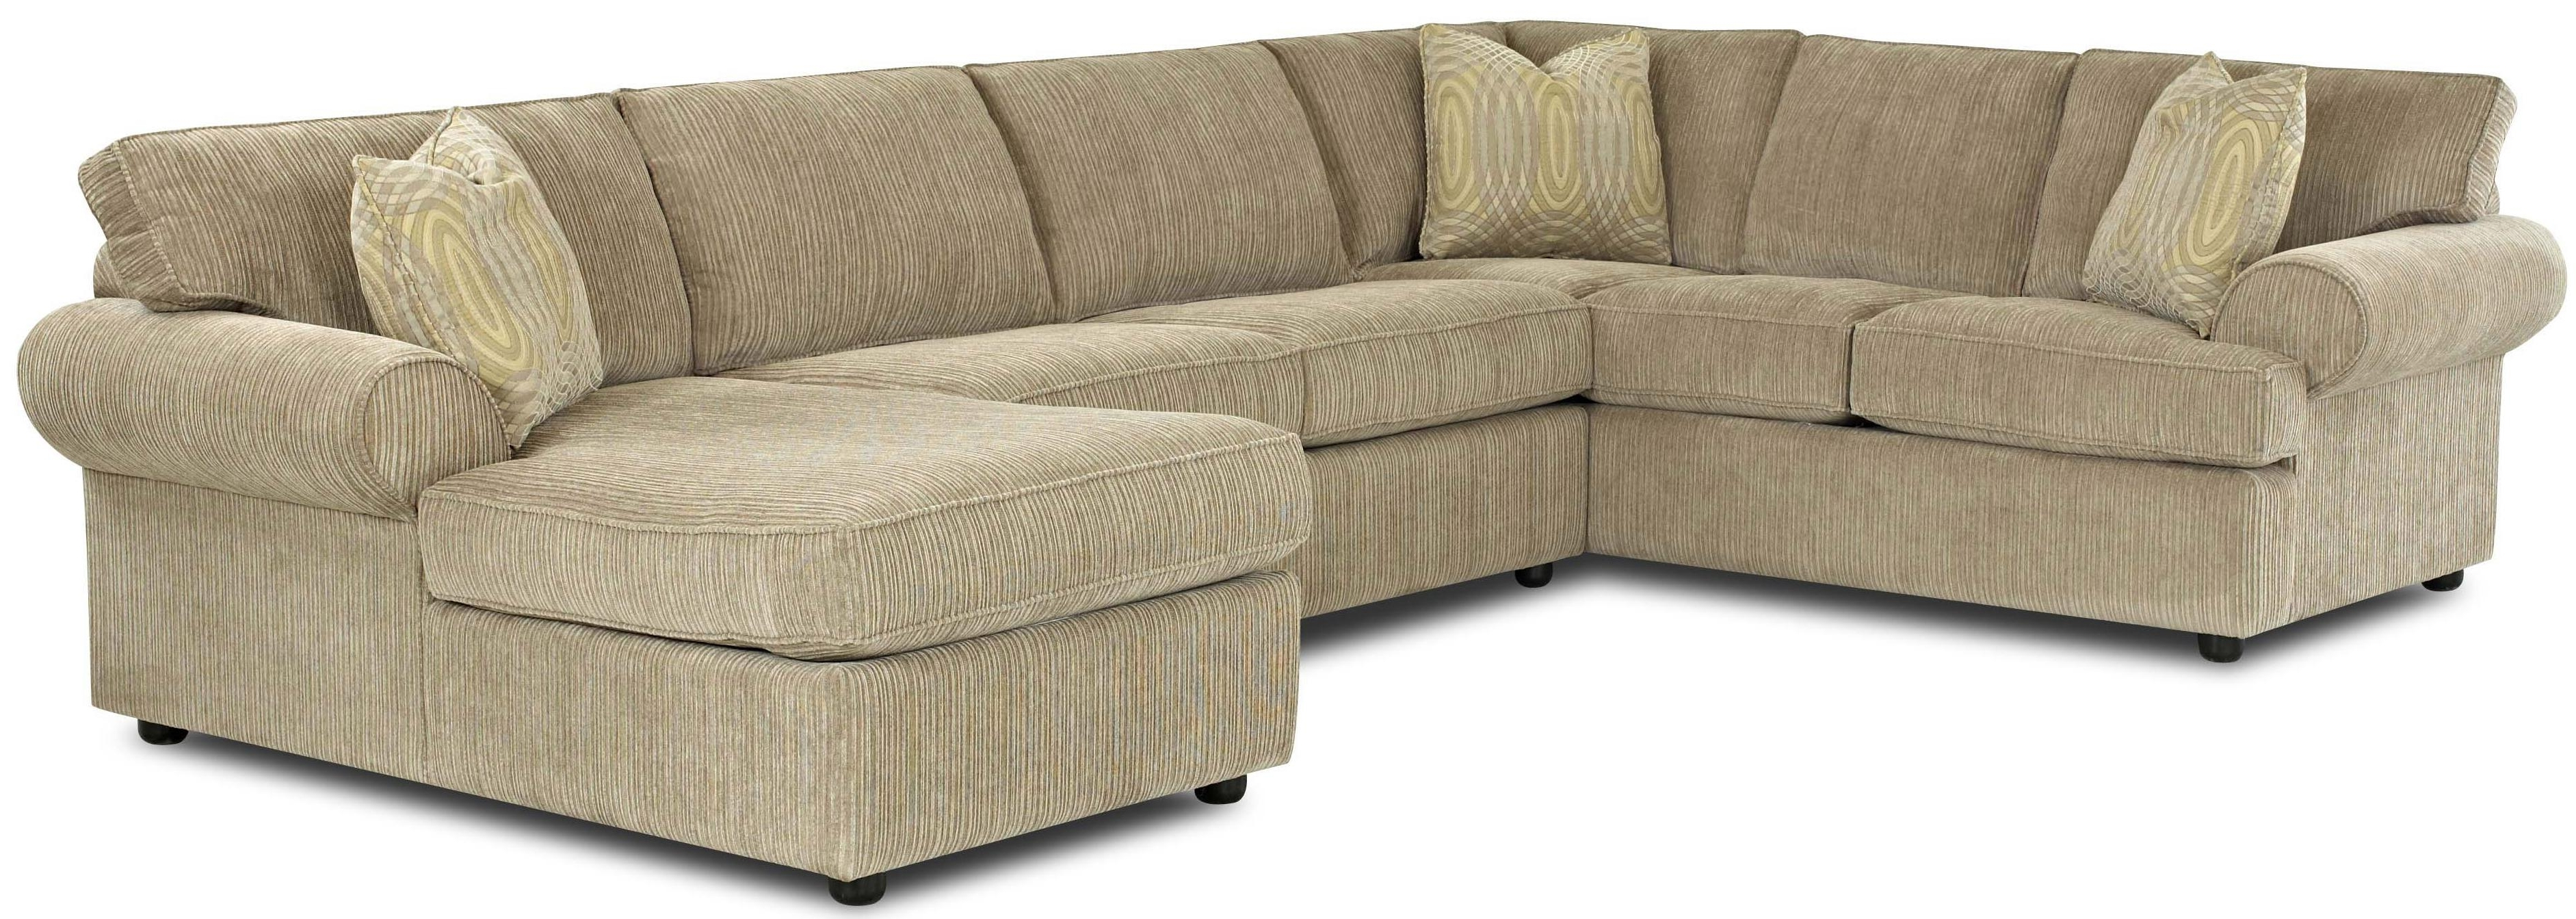 Sleeper Sectionals With Chaise For Well Known Transitional Sectional Sofa With Rolled Arms And Right Chaise And (View 9 of 15)